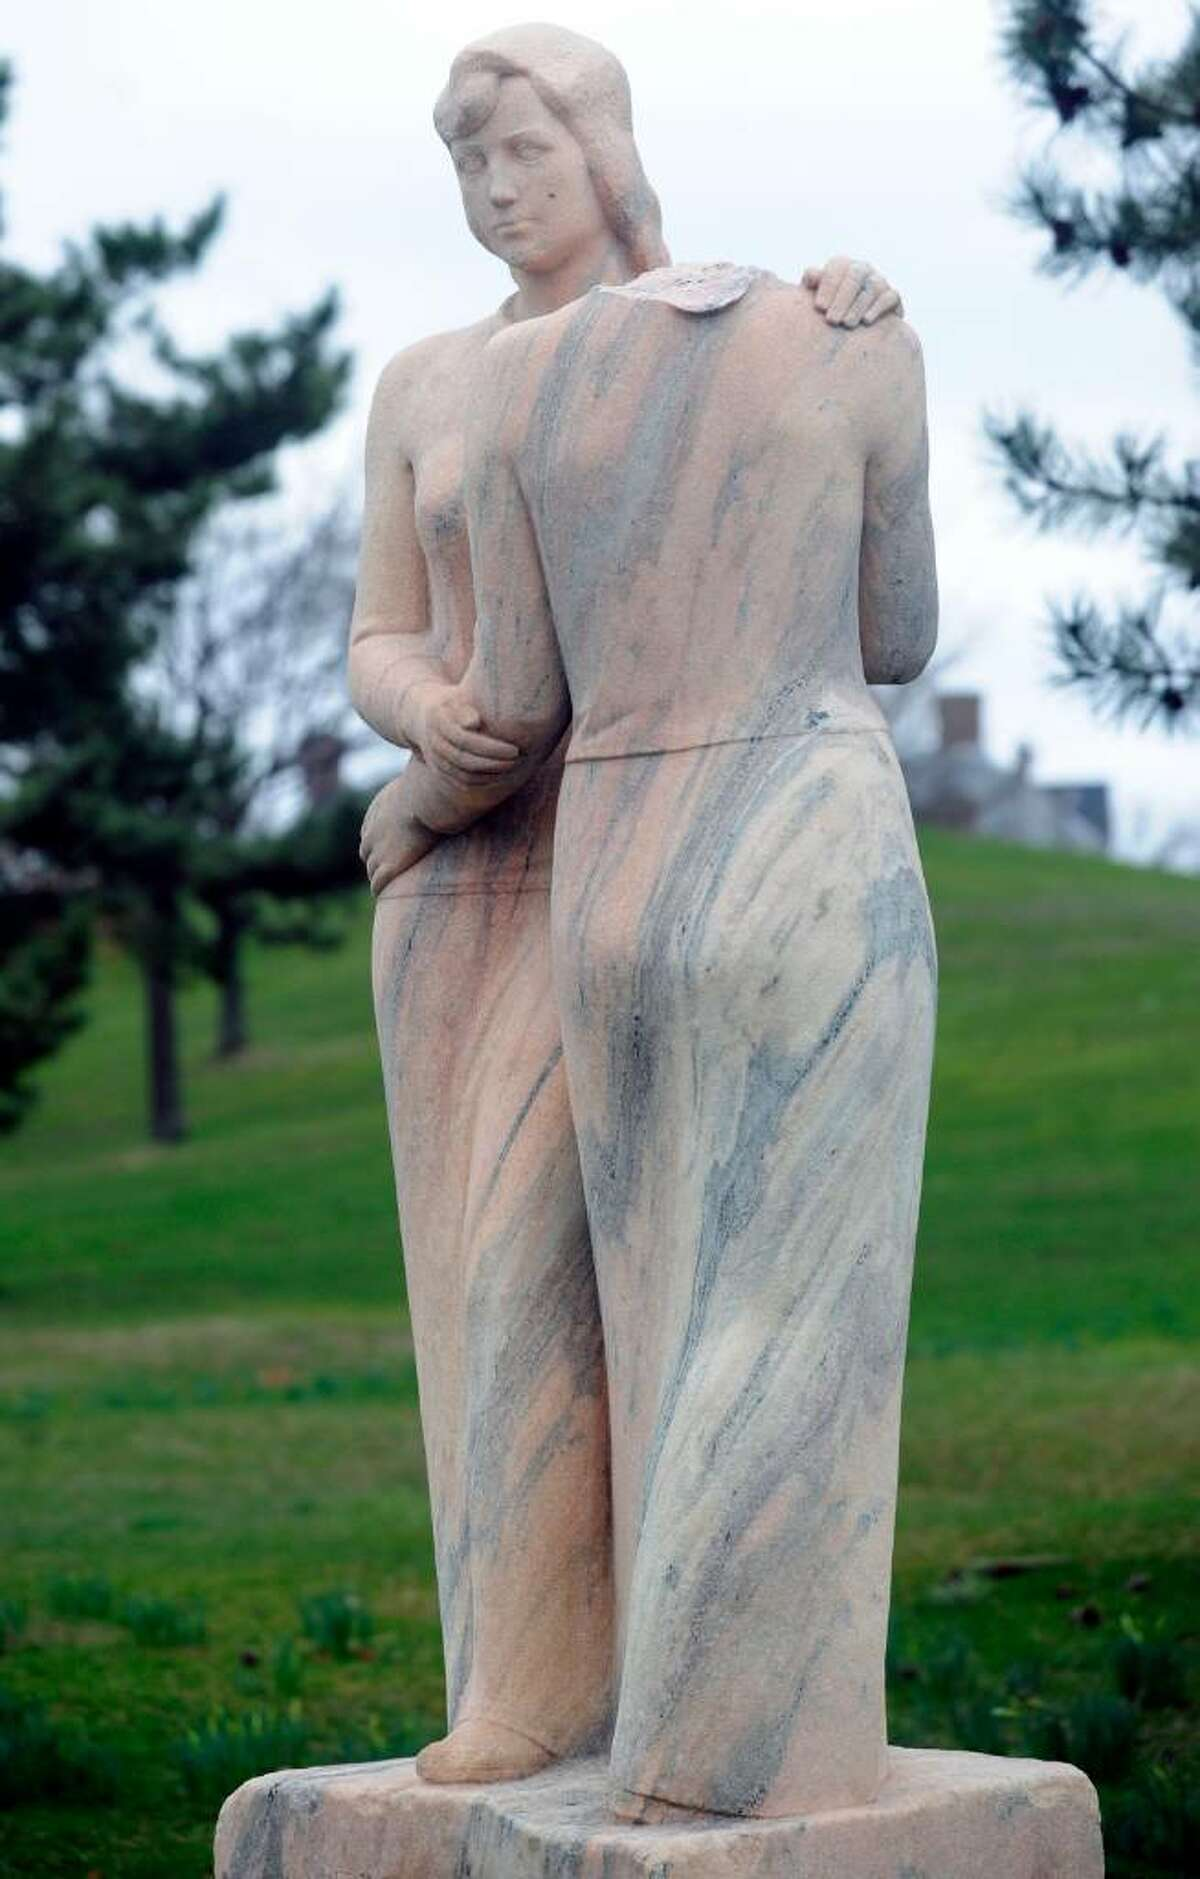 """""""Neighbors,"""" a depression era statue by Henry Kreis, stands in Czecik Marina Park on Shippan Avenue March 28, 2010. The statue, which depicts two women embracing, was damaged when the head of one of the women was cut off and taken. It was funded by the Works Progress Administration, an agency created to generate jobs in the late 1930s."""